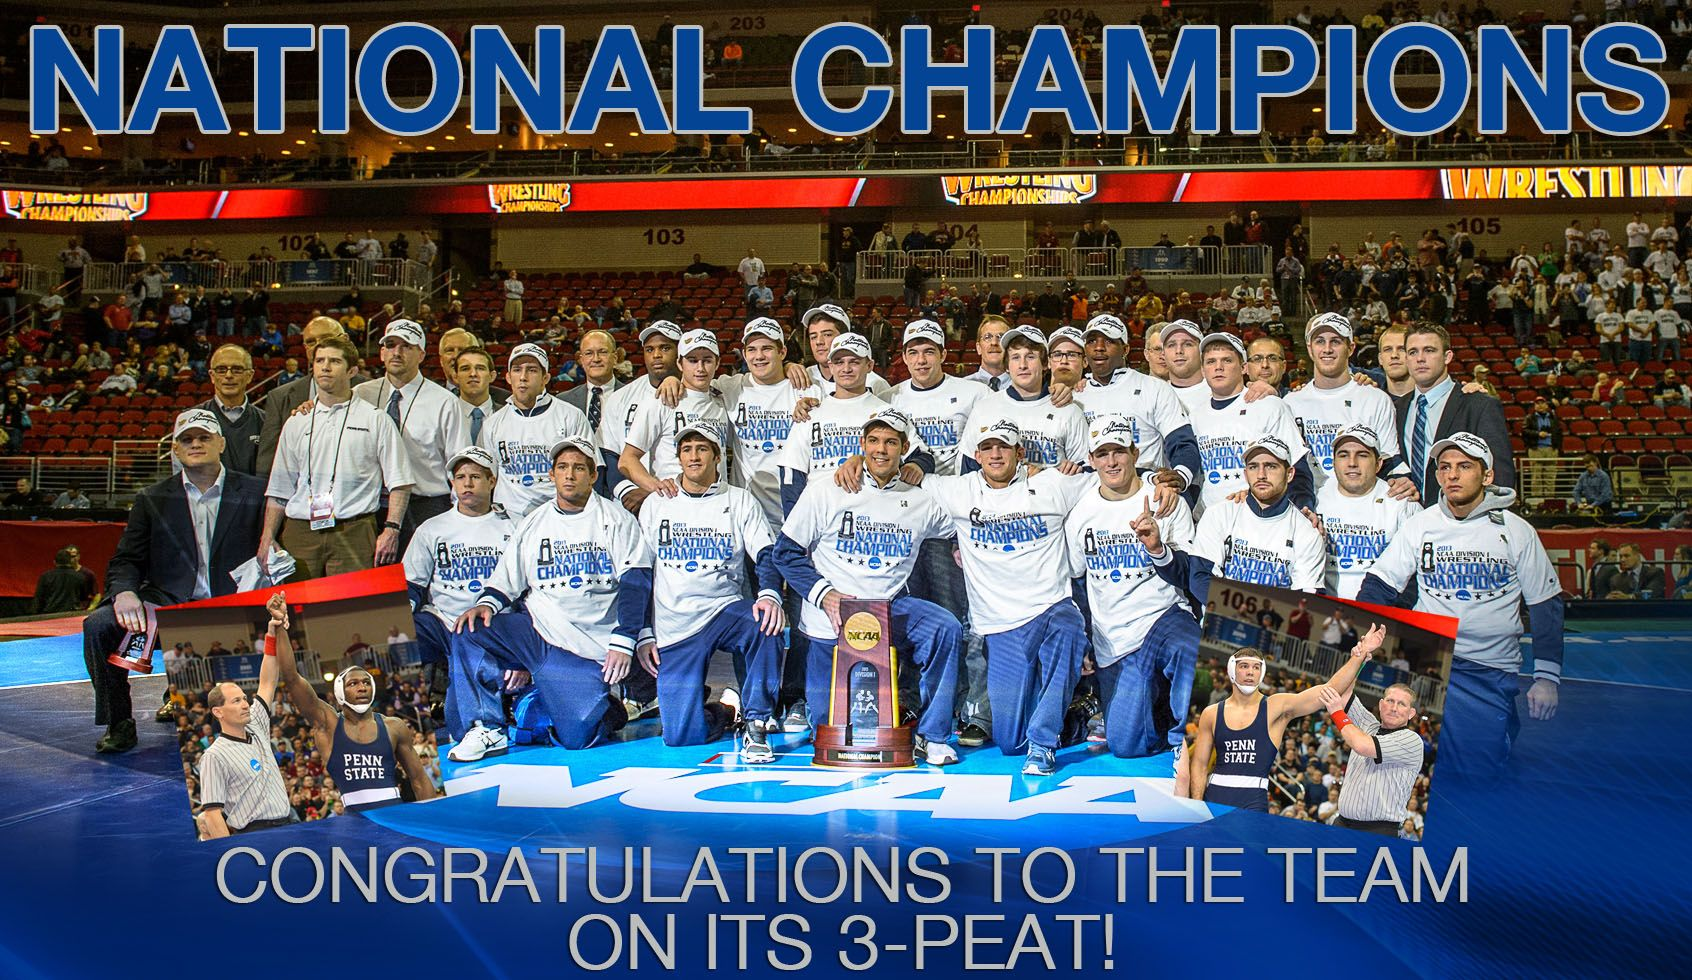 3 Peat Congratulations On Your Third Straight Title Nittany Lion Wrestling Penn State National Champions Season Ticket